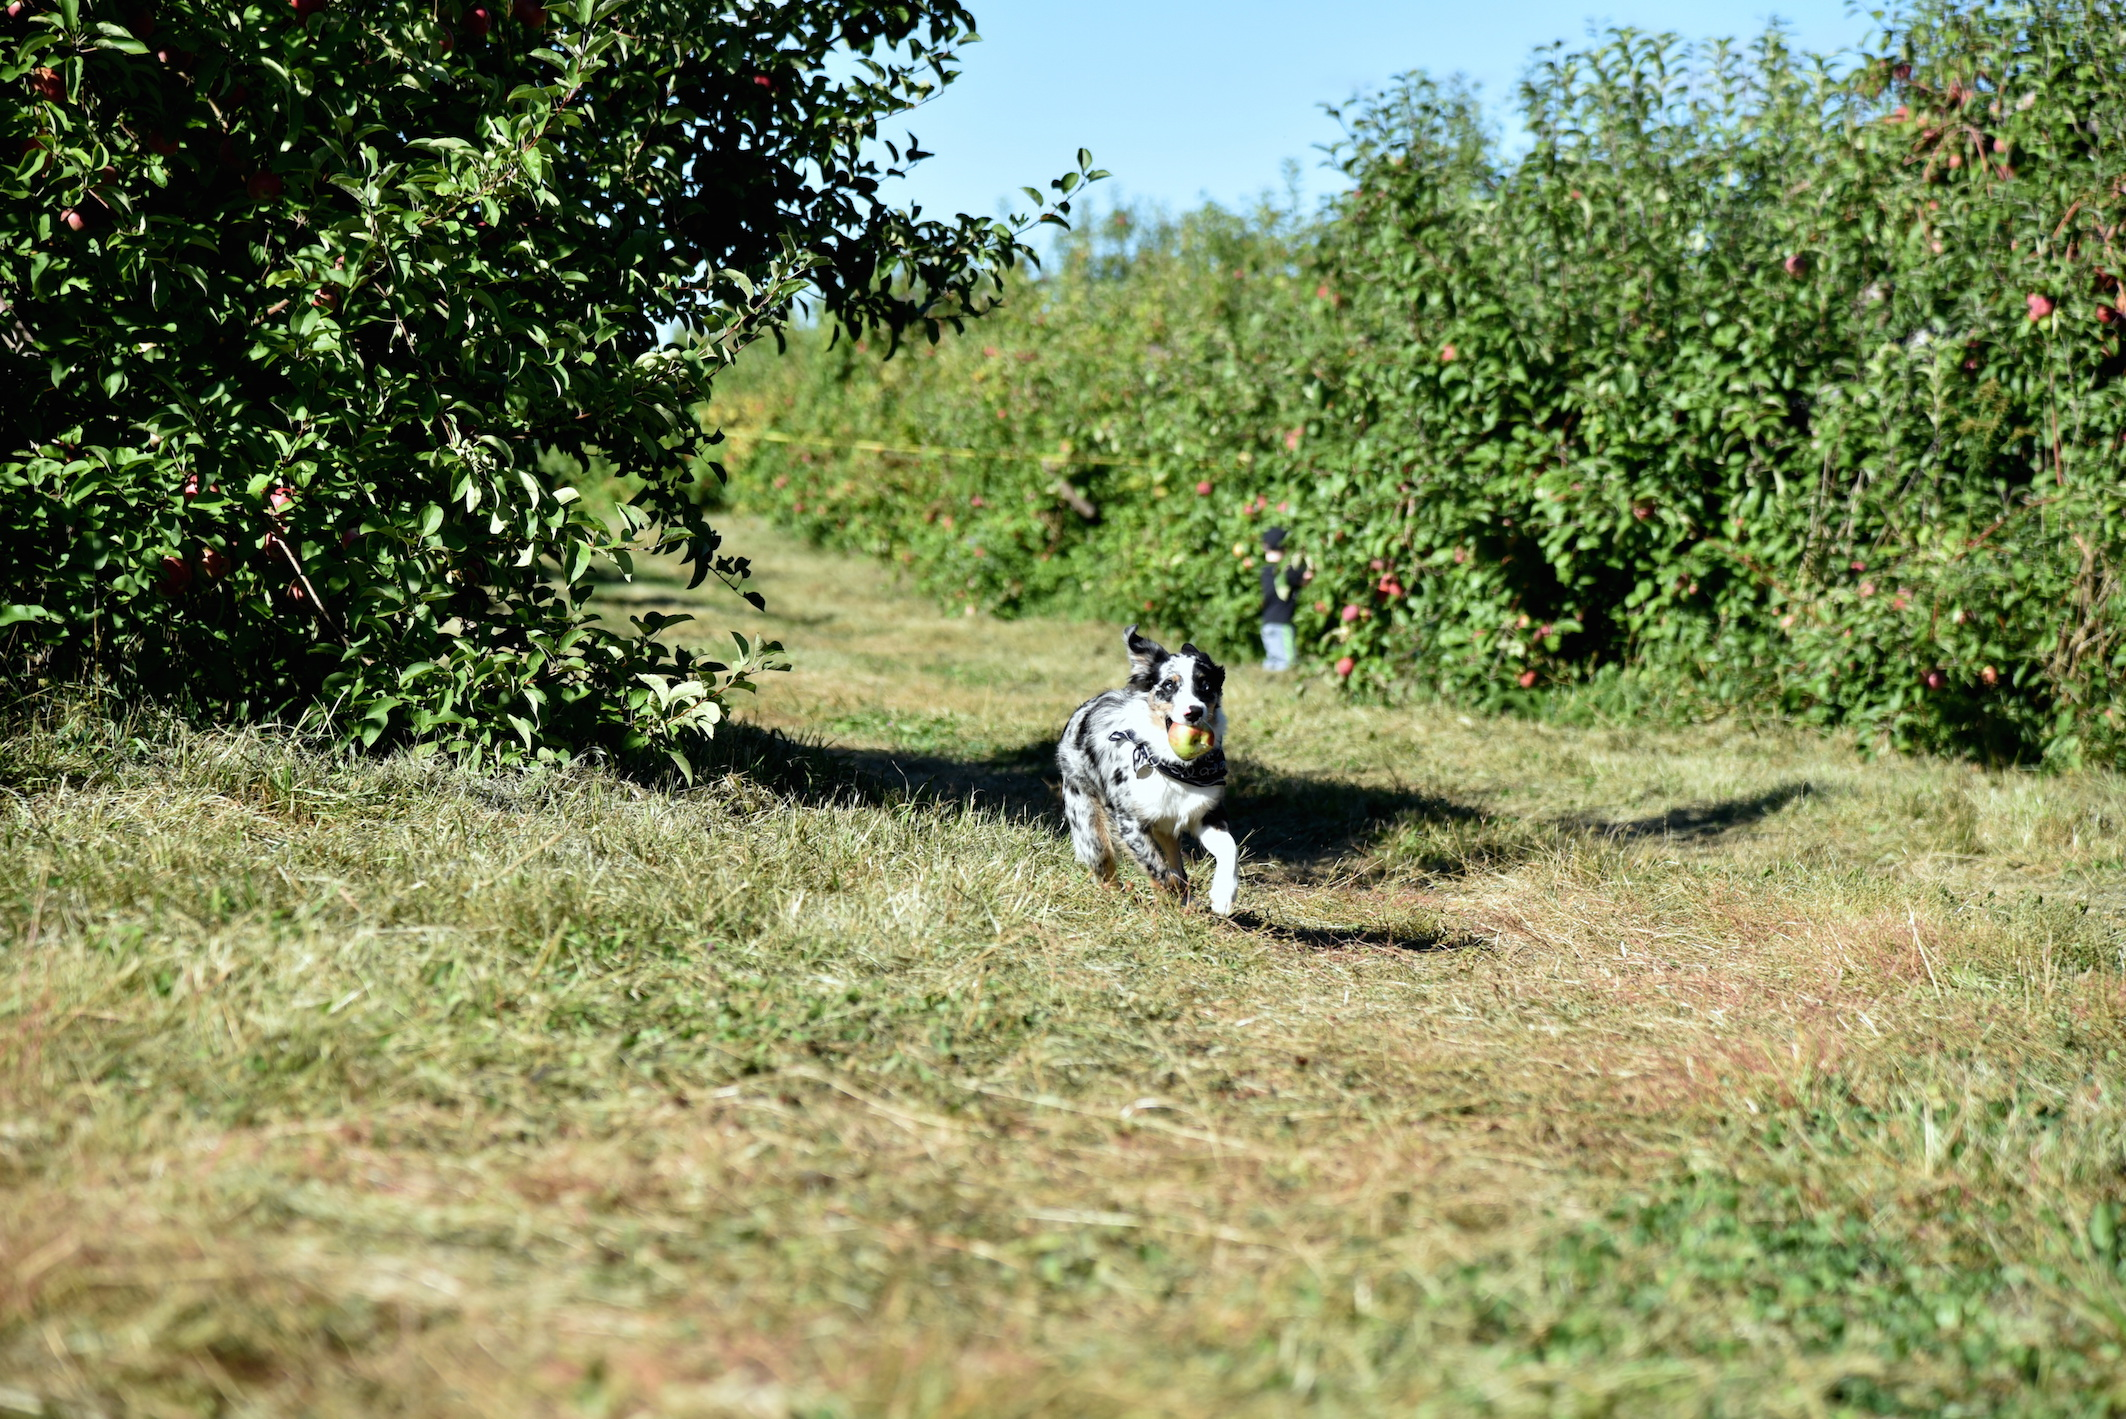 Dog Friendly Apple Picking Place outside New York